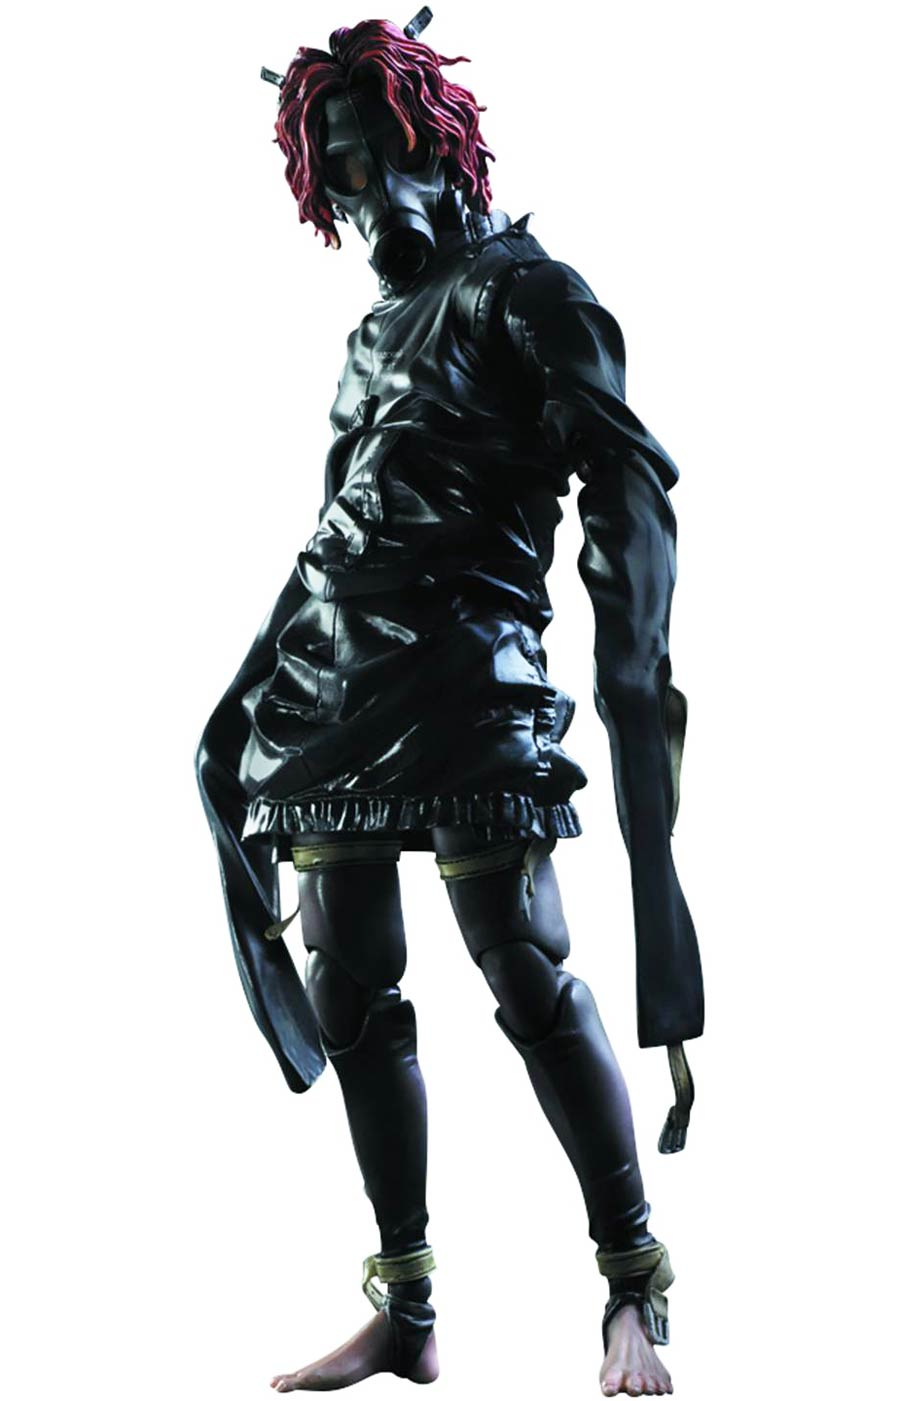 Metal Gear Solid V Phantom Pain Play Arts Kai Action Figure - Tretij Rebenok